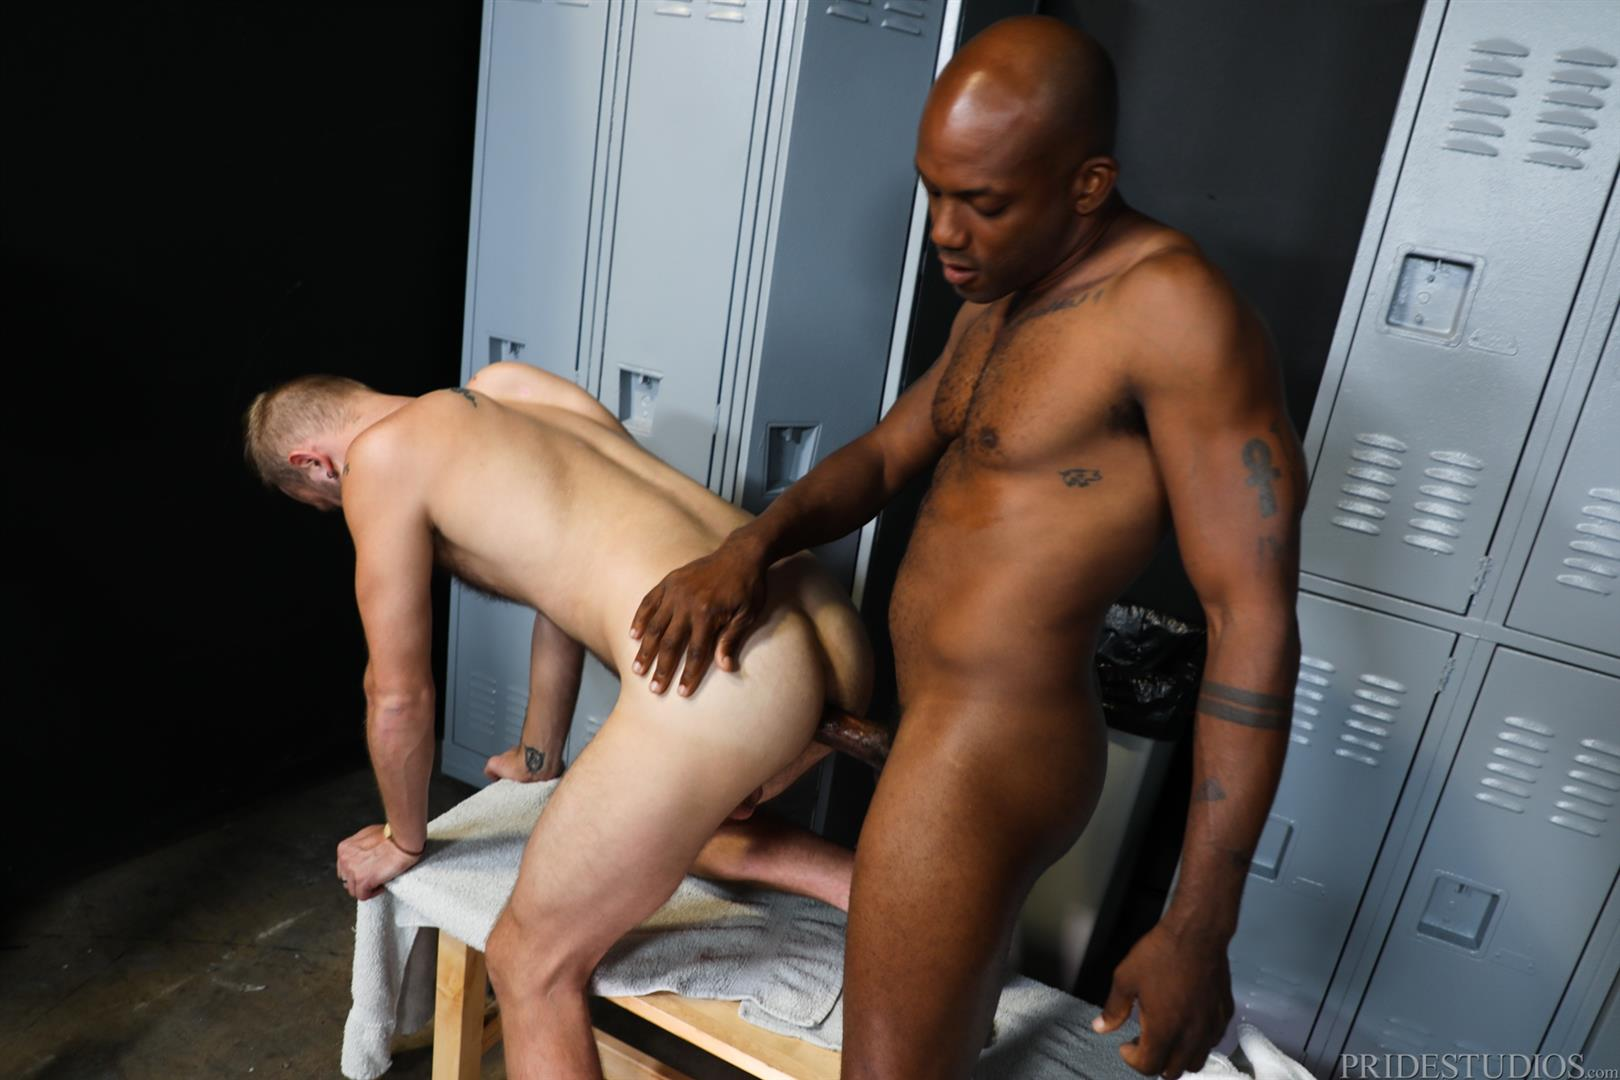 Extra-Big-Dicks-Osiris-Blade-and-Chandler-Scott-Interracial-Bareback-Fucking-13 Osiris Blade Bareback Fucking Chandler Scott With His Big Black Dick